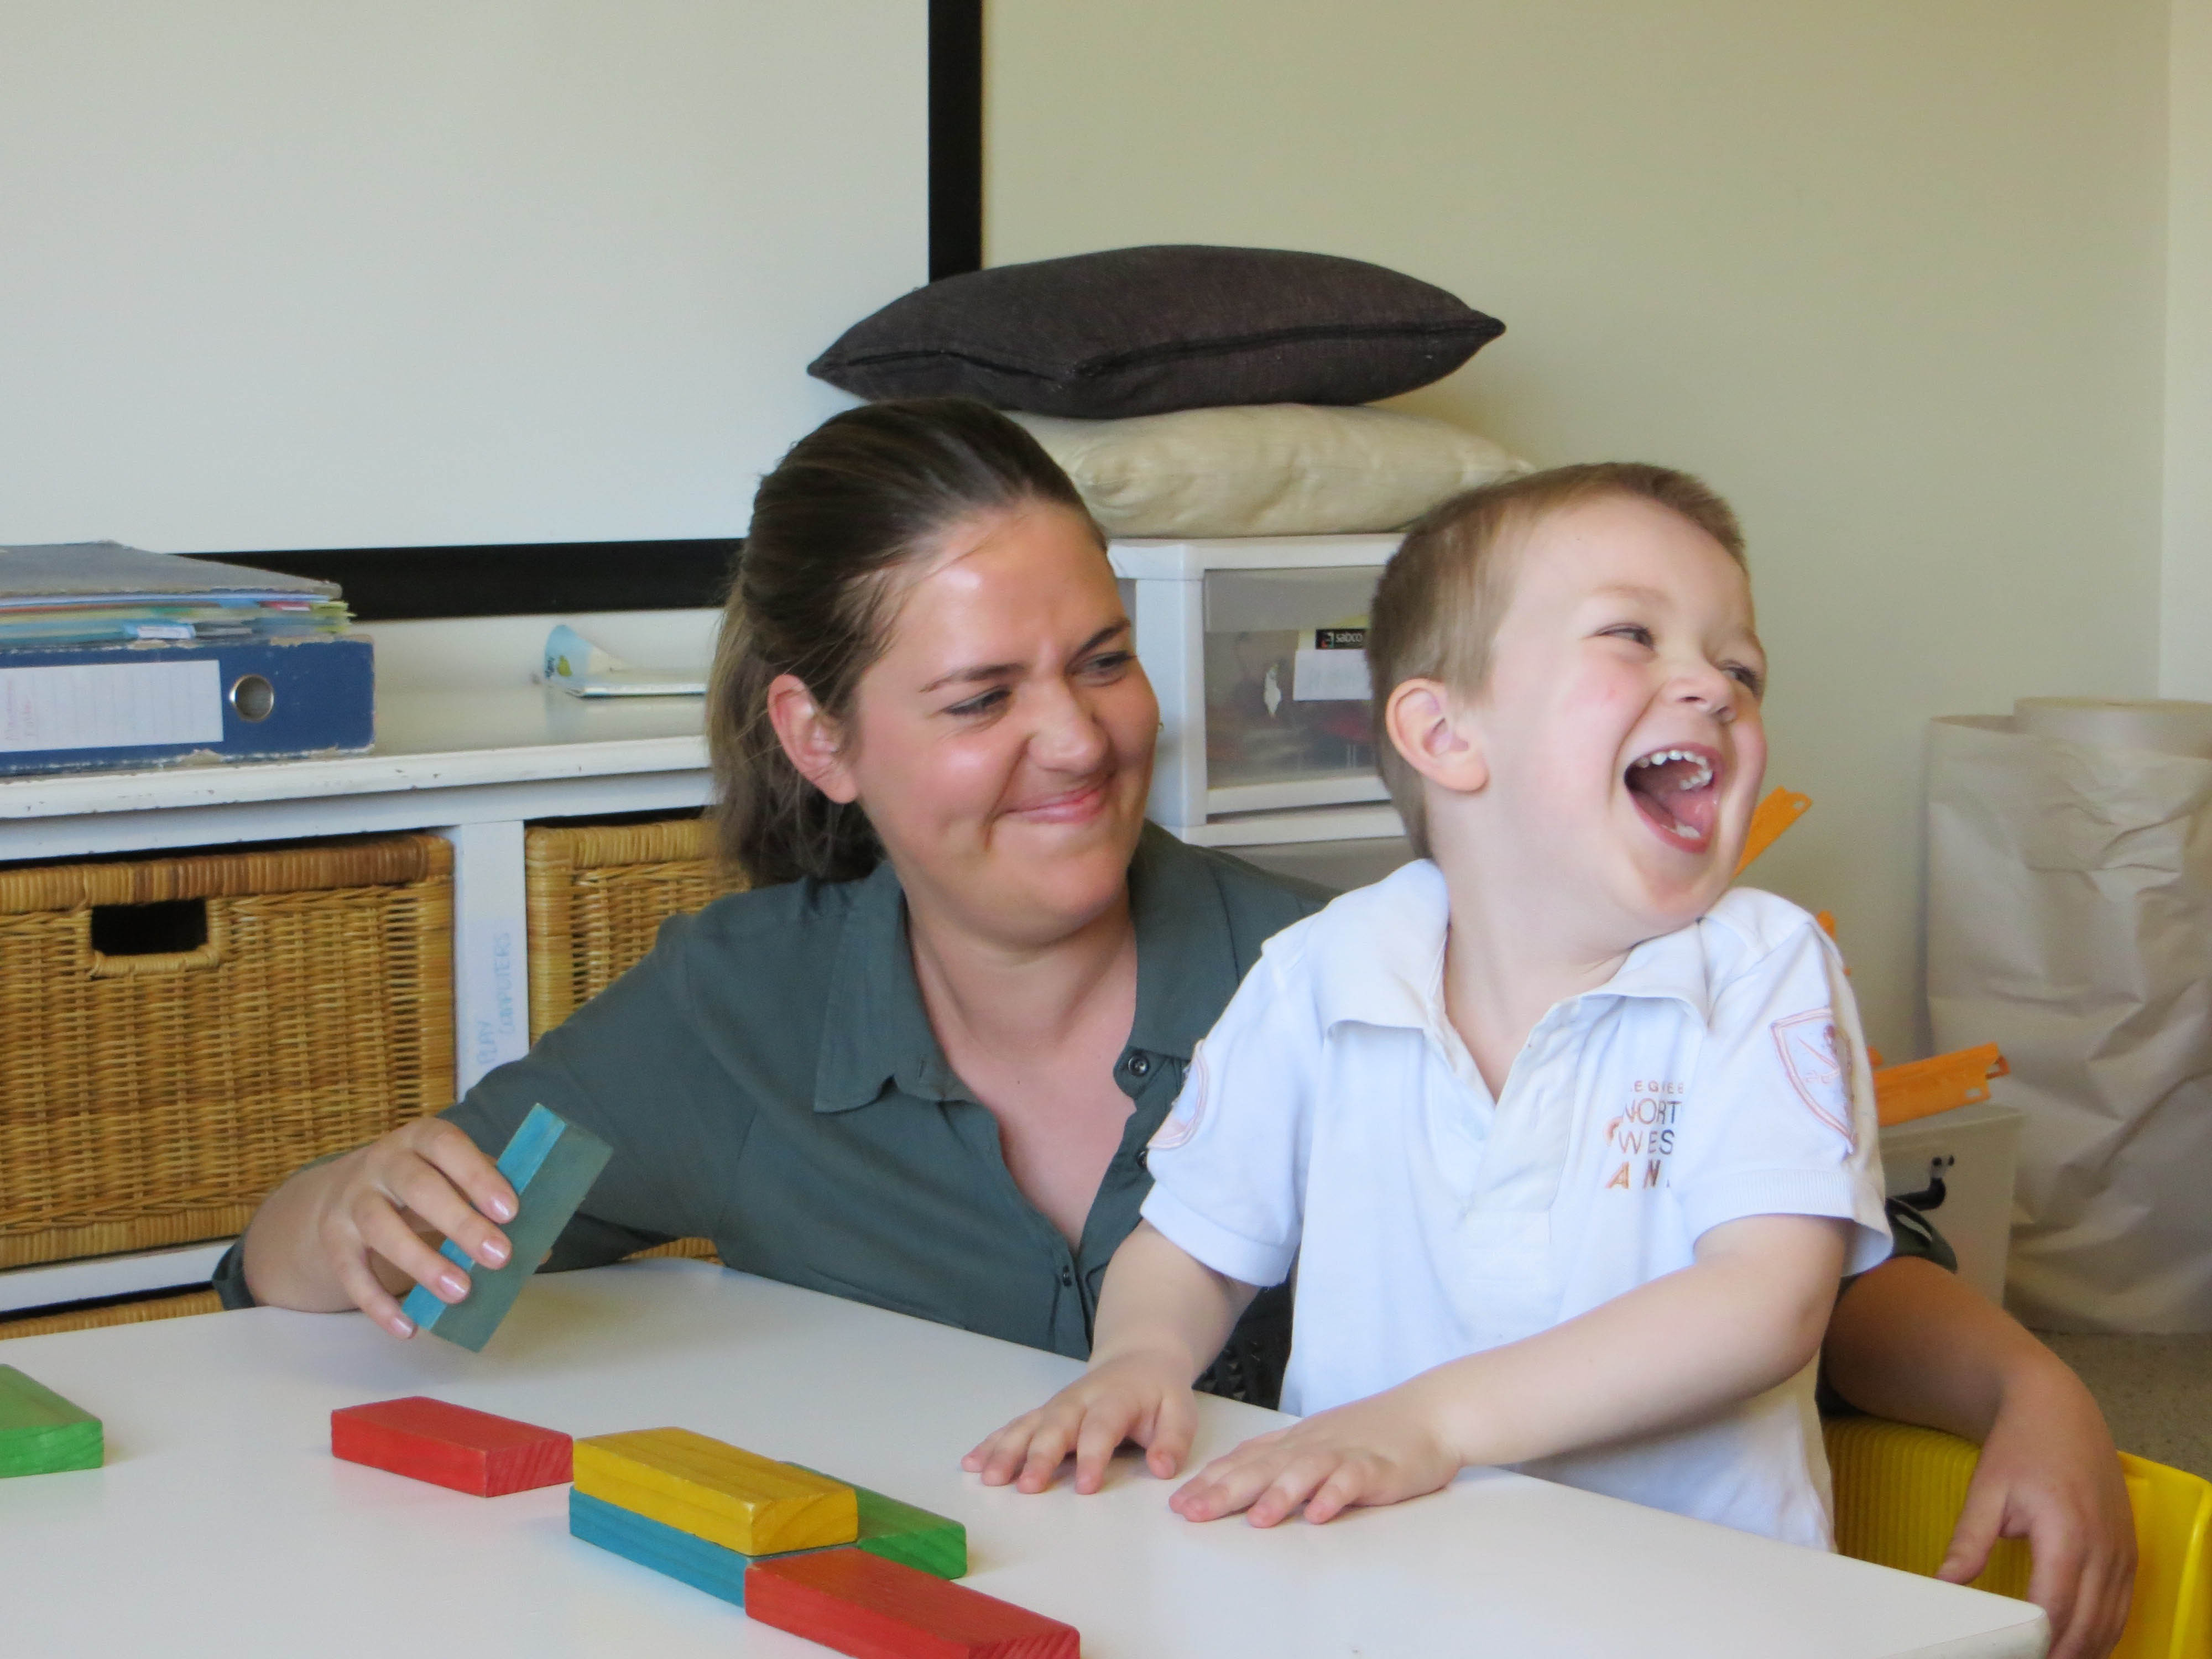 L4Life's mission is to provide the highest standard of ABA-based services to help children with ASD and their families achieve their full potential, regardless of their financial circumstances.